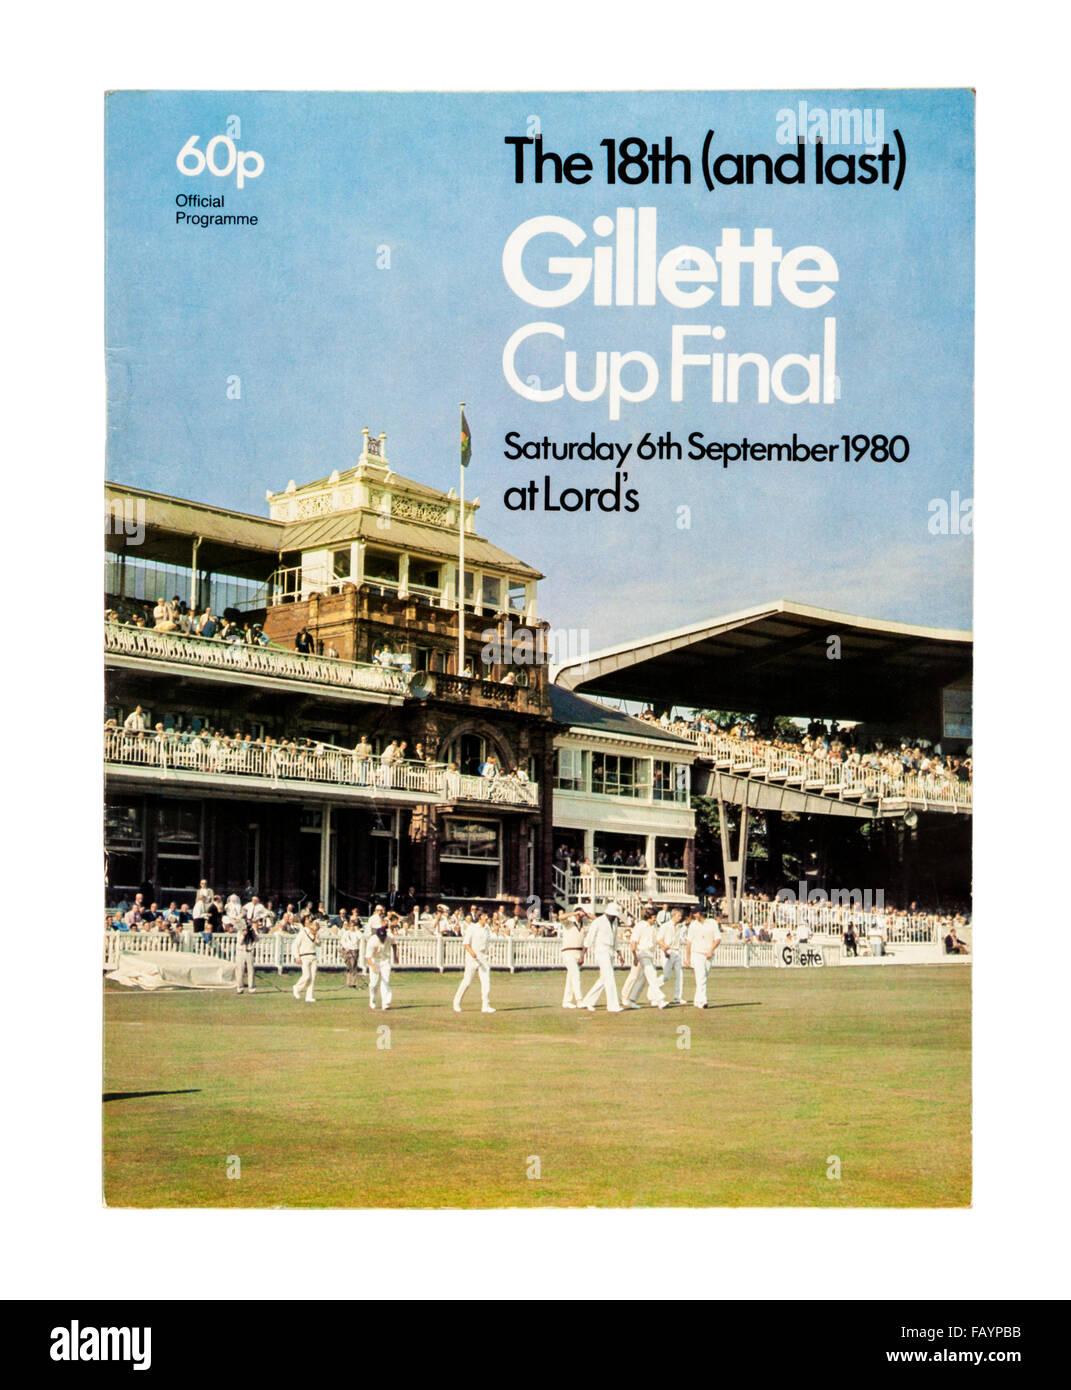 Official Souvenir Programme of the 18th (and last) Gillette Cup Final at Lord's on 6th September 1980. - Stock Image